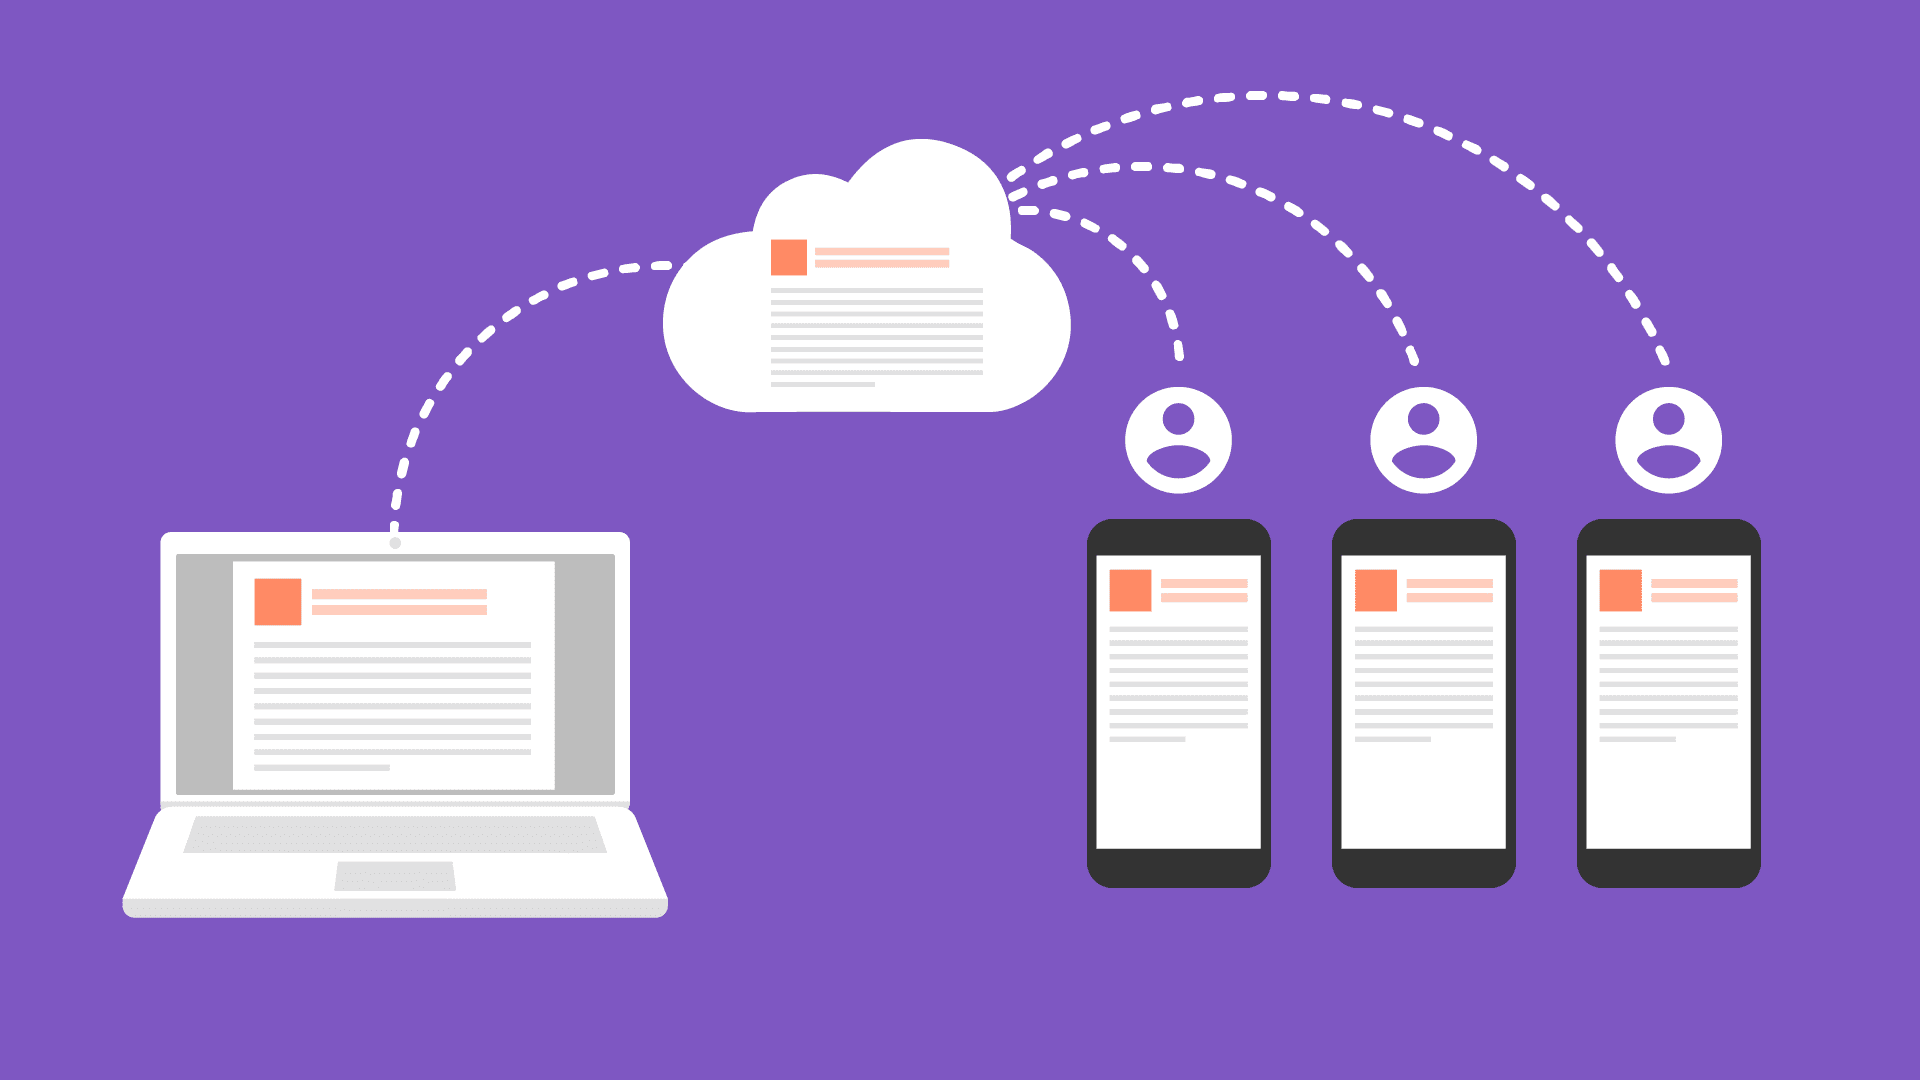 Illustration of syncing cloud data with clients